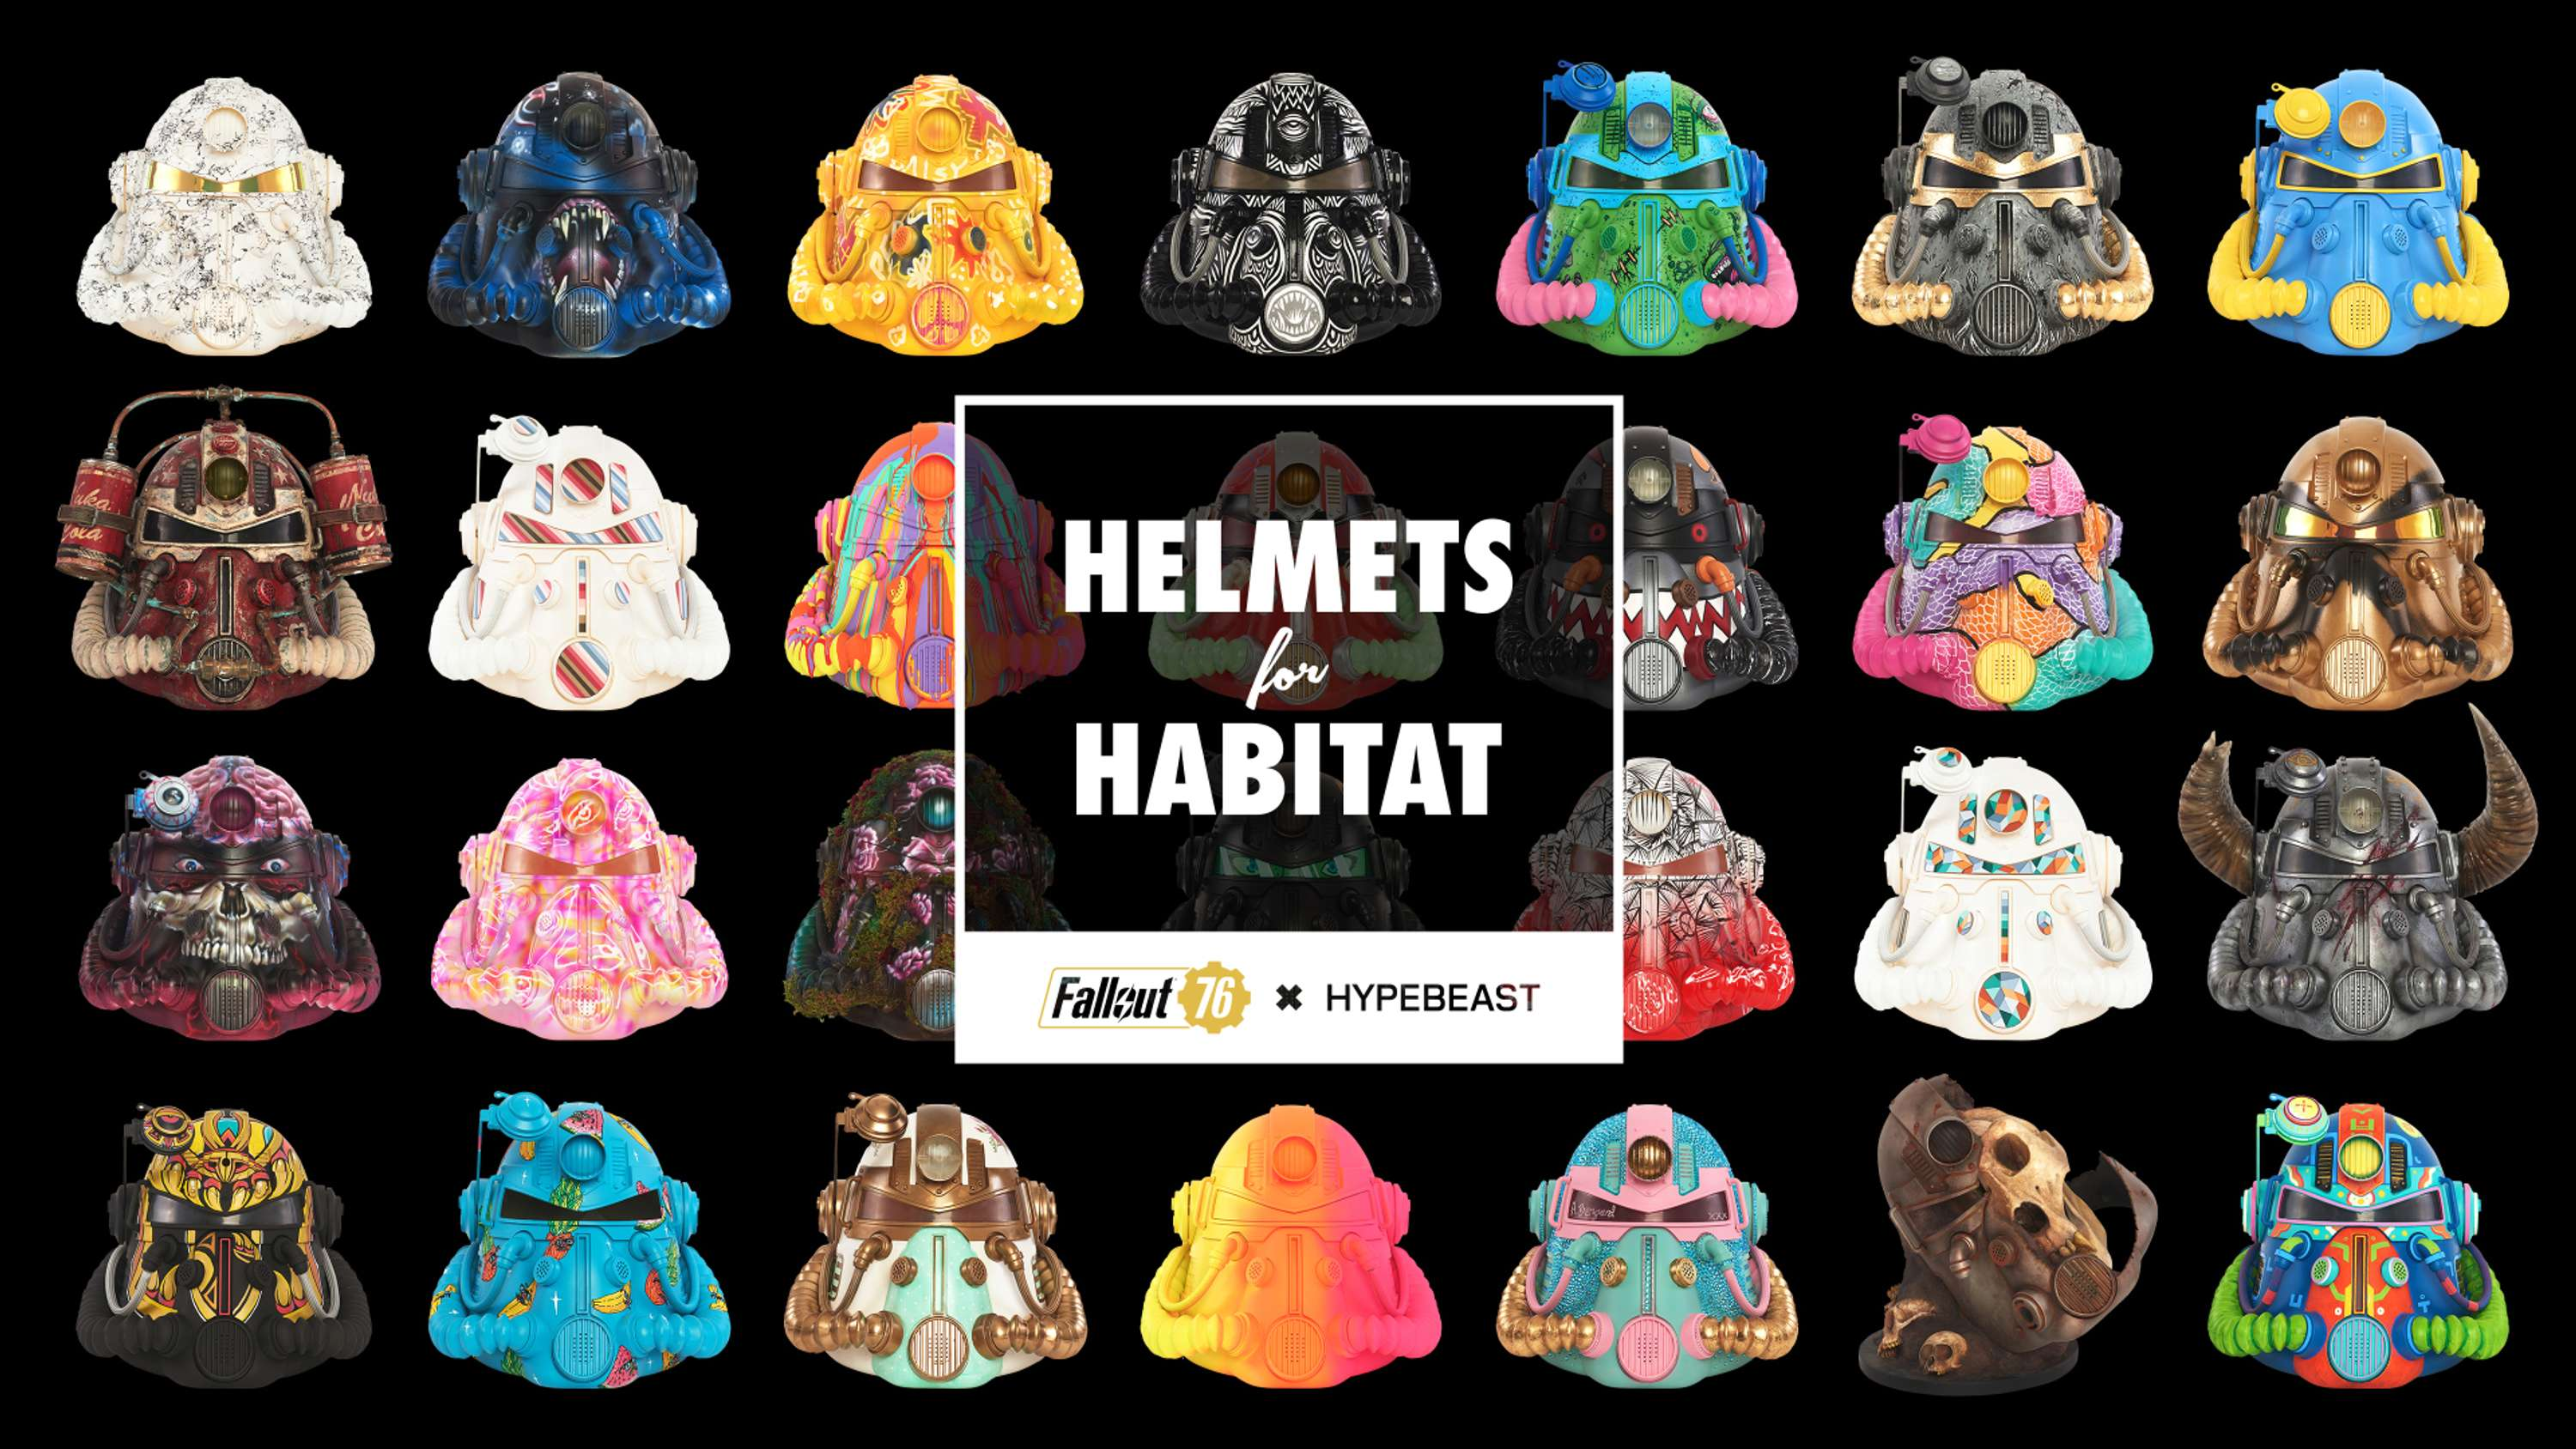 official photos 85226 8b7f8 Tom s helmet was hand customised using POSCA pens in his instantly  recognisable heavy black linear style - Click though the photos below to  see all the ...